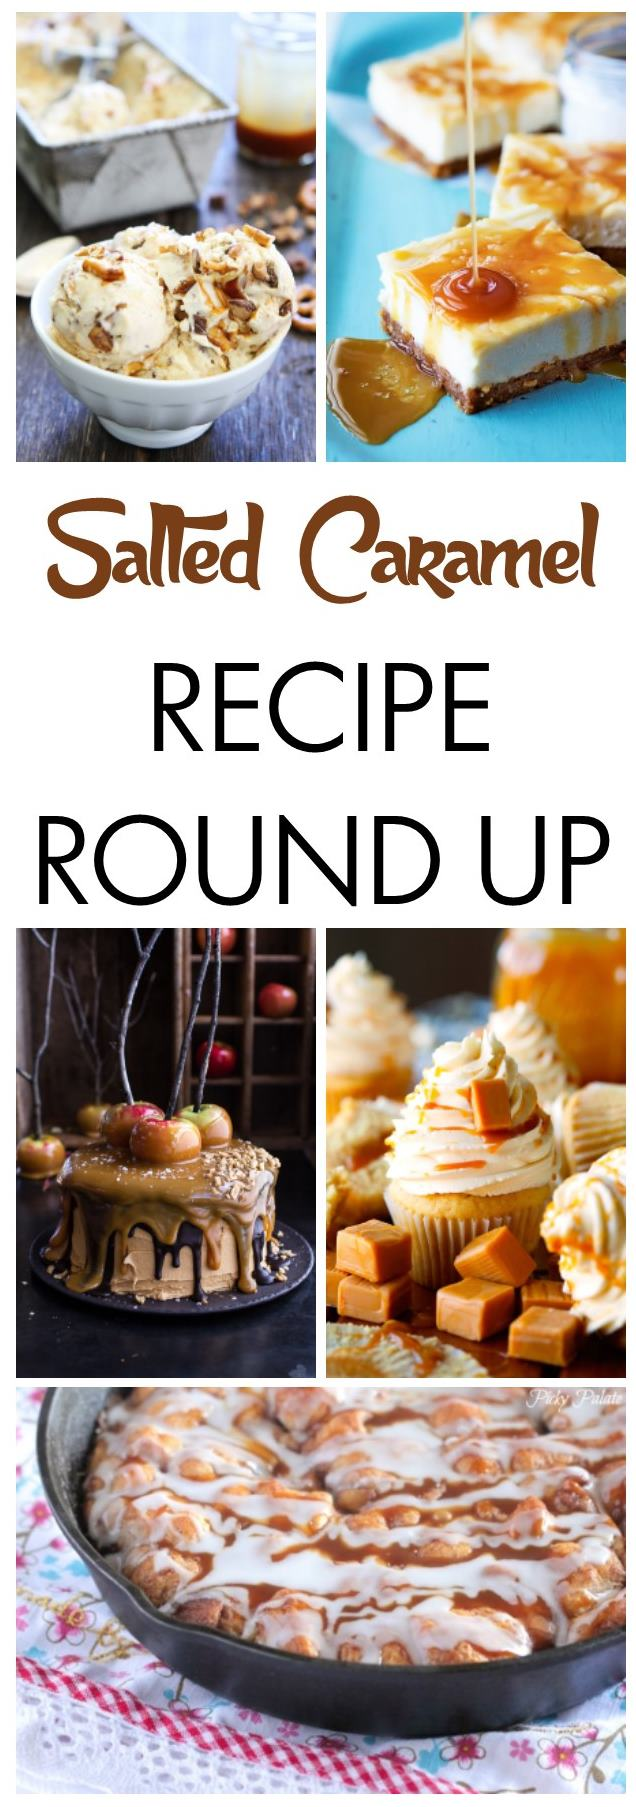 salted_caramel_recipe_roundup